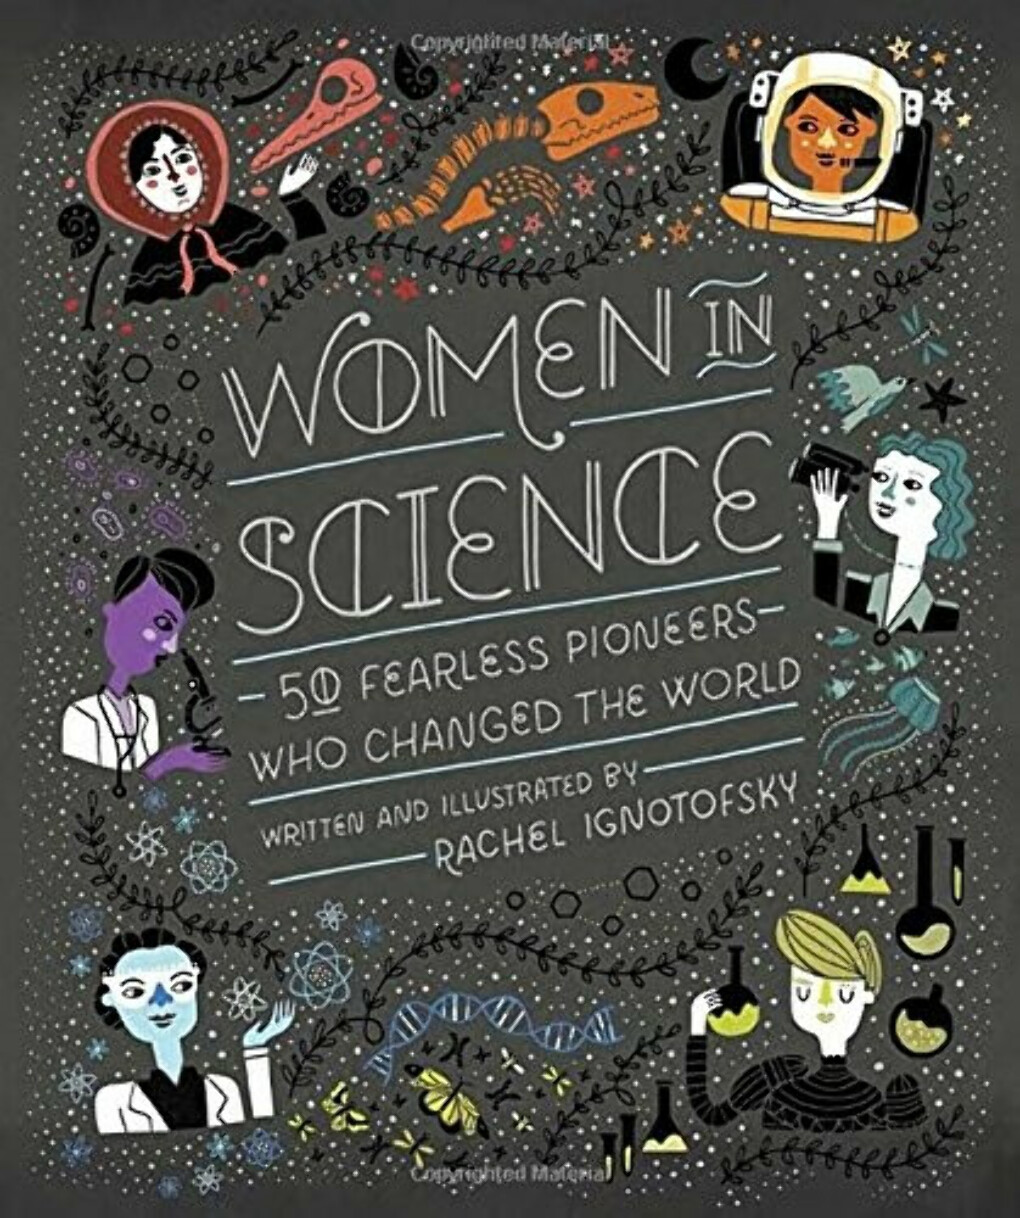 Women in Science: 50 Fearless Pioneers Who Changed the World                    Hardcover                                                                                                                                                        – July 26, 201